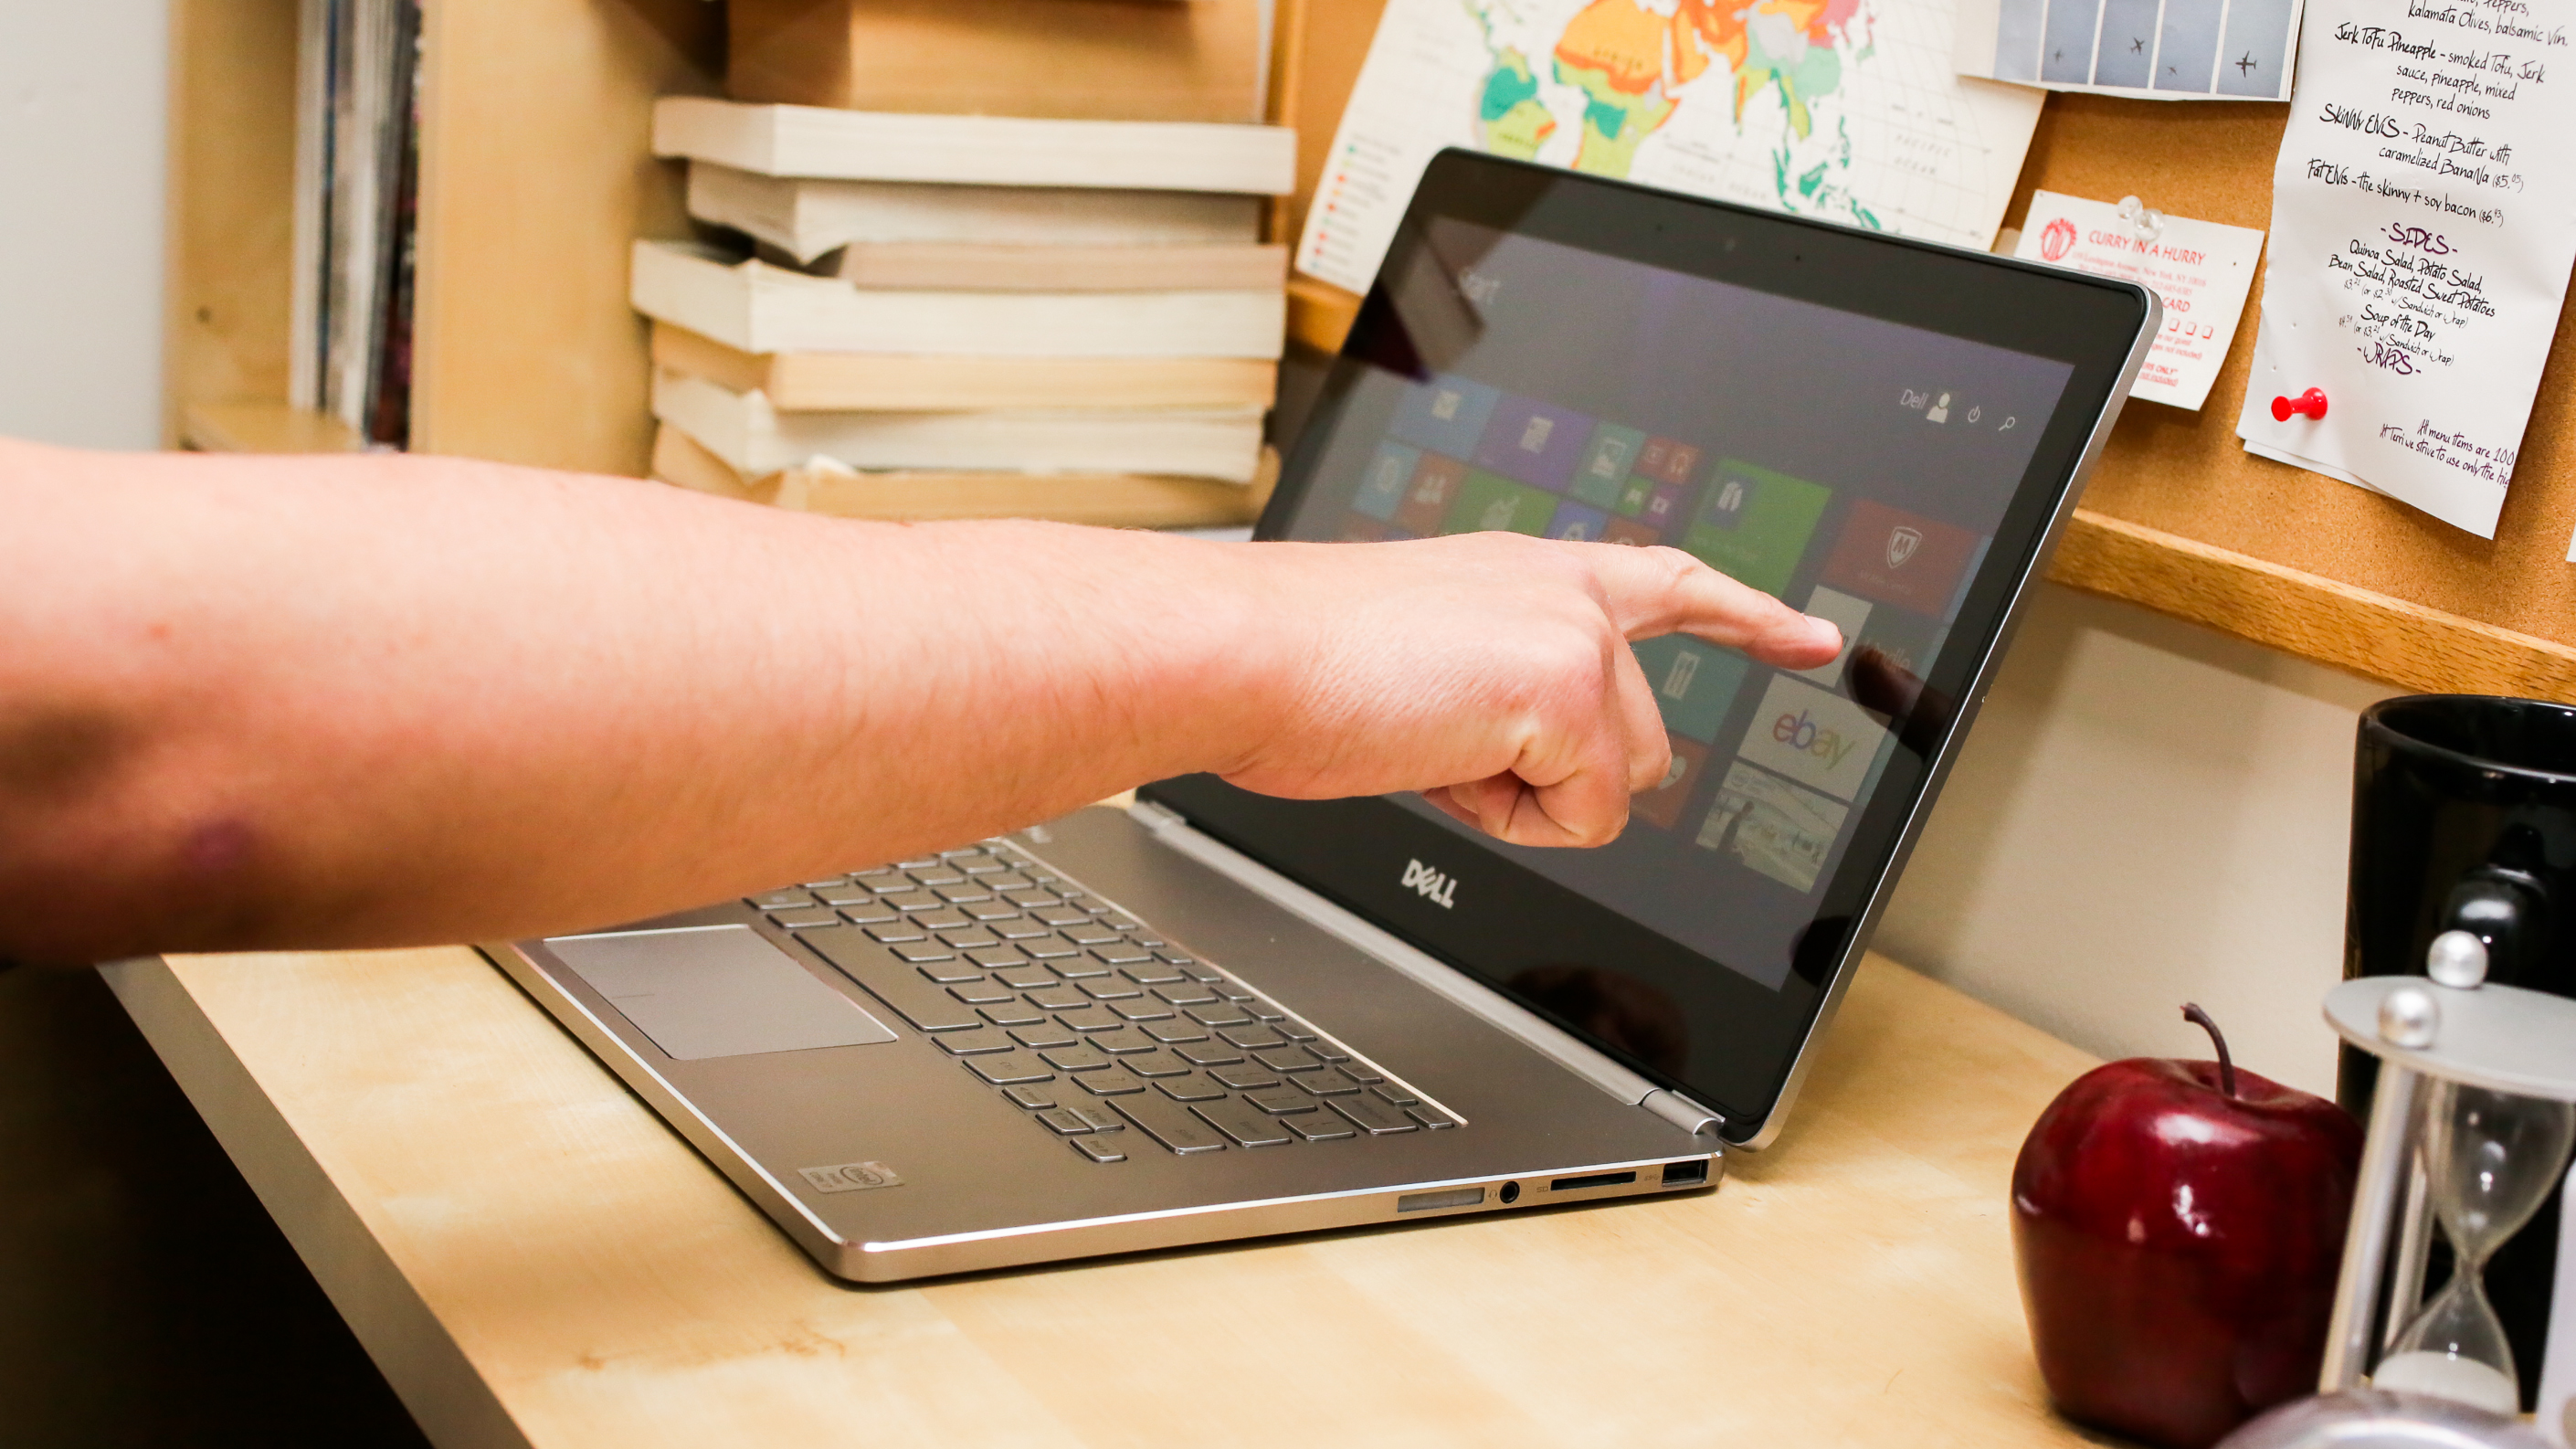 dell-inspiron-14-7000-series-product-photos03.jpg